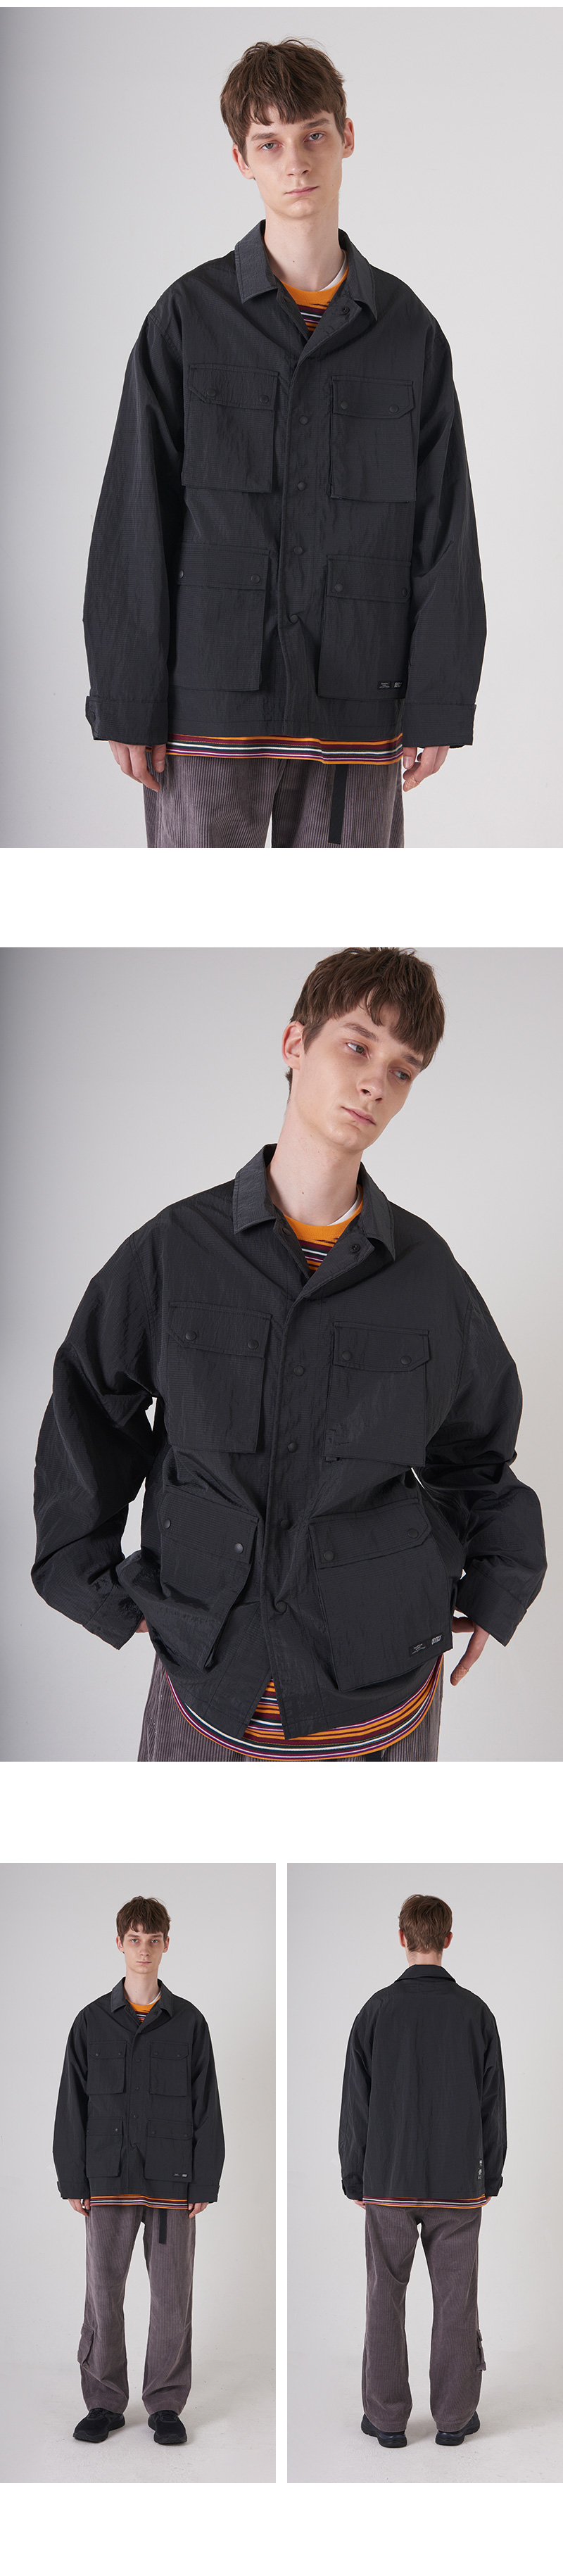 POLY RIBSTOP FATIGUE JACKET(DARK BLUE)_CTONAJK01UB5